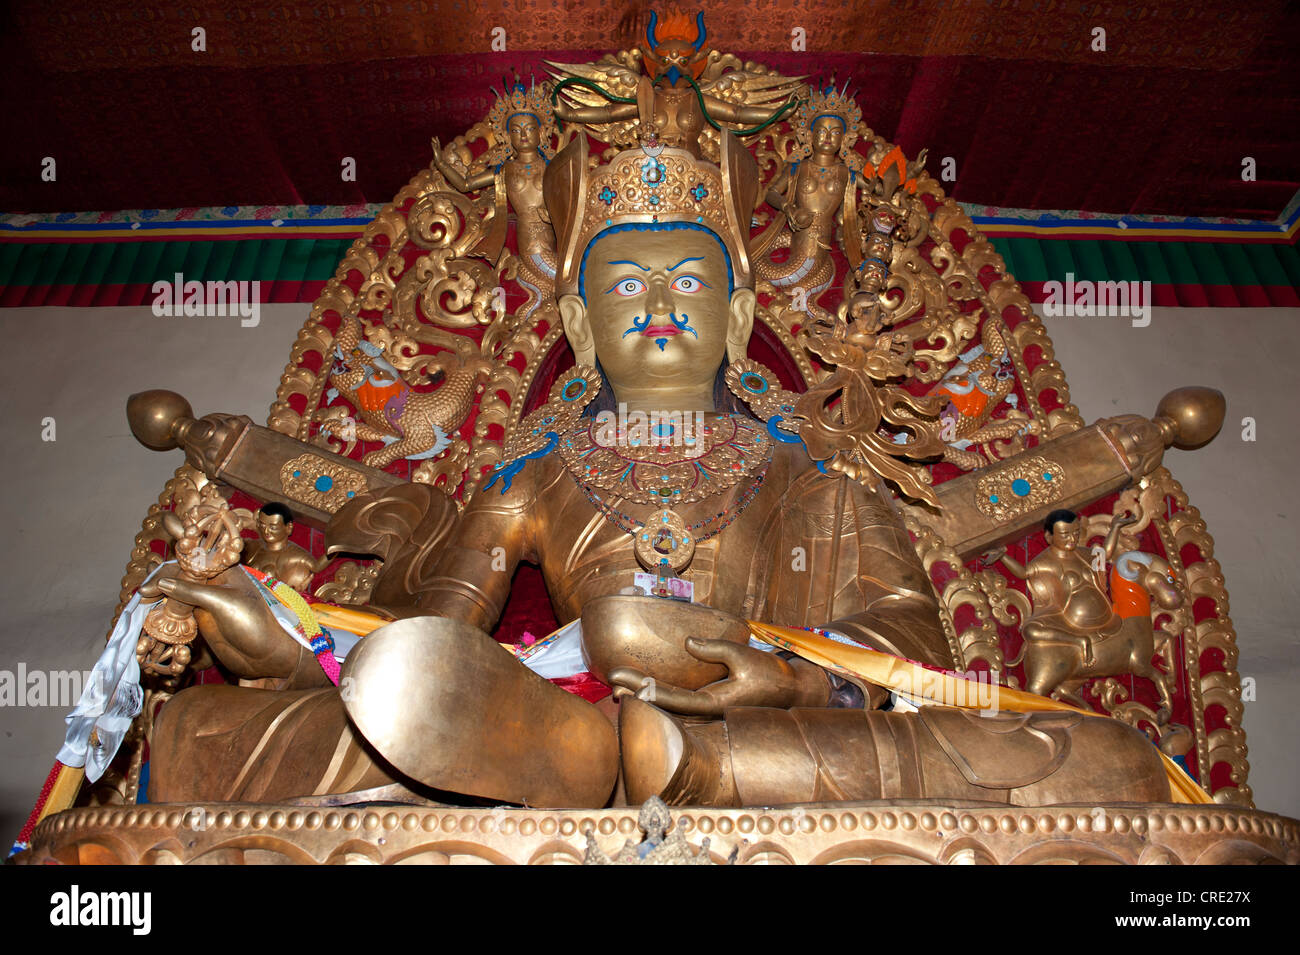 Tibetan Buddhism, large statue, holy Padmasambhava in the Rongbuk Monastery, Mount Everest region, Himalayan, central - Stock Image